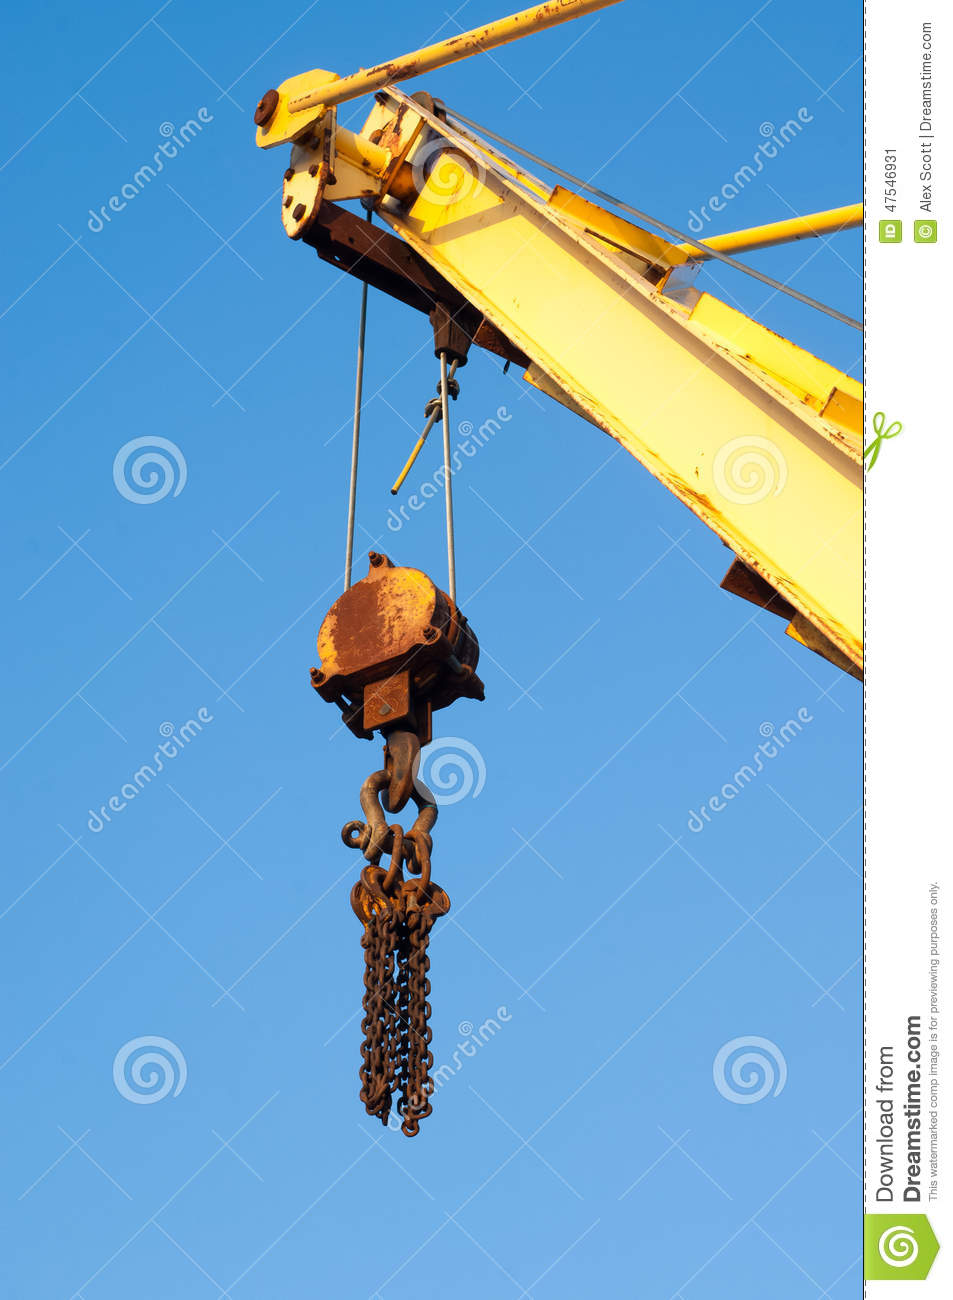 Pulleys In Cranes : Crane jib and pulley stock photo image